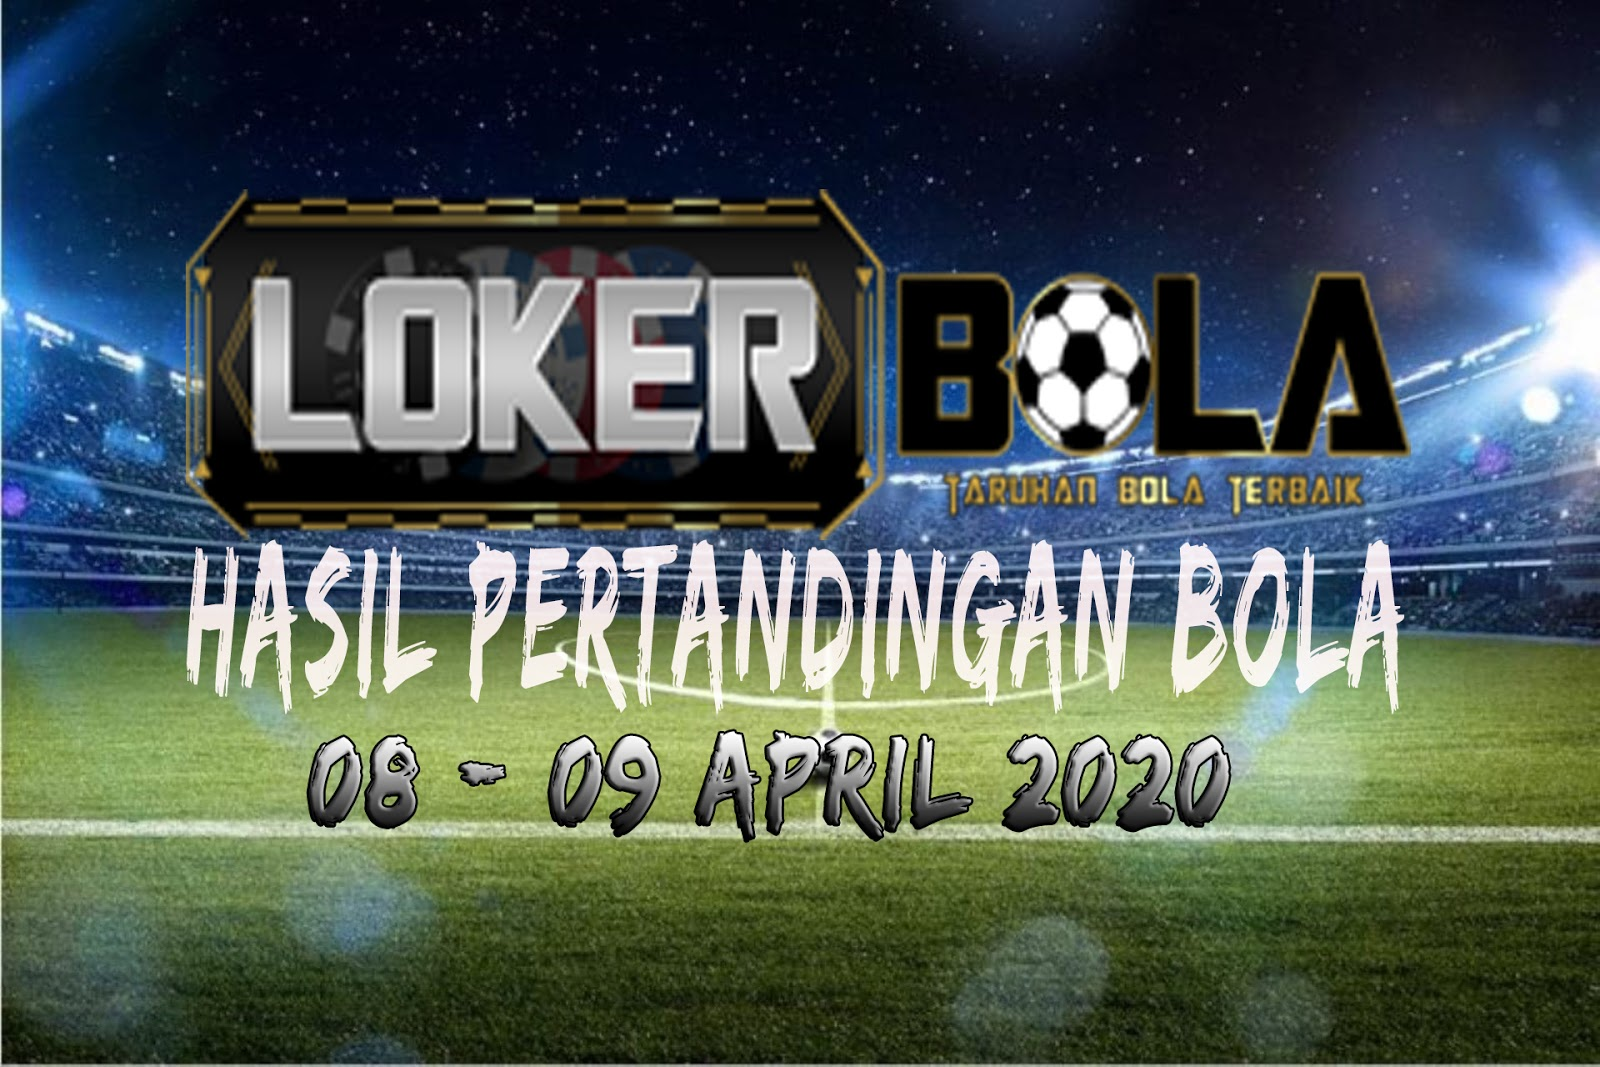 HASIL PERTANDINGAN BOLA 08 – 09 APRIL 2020